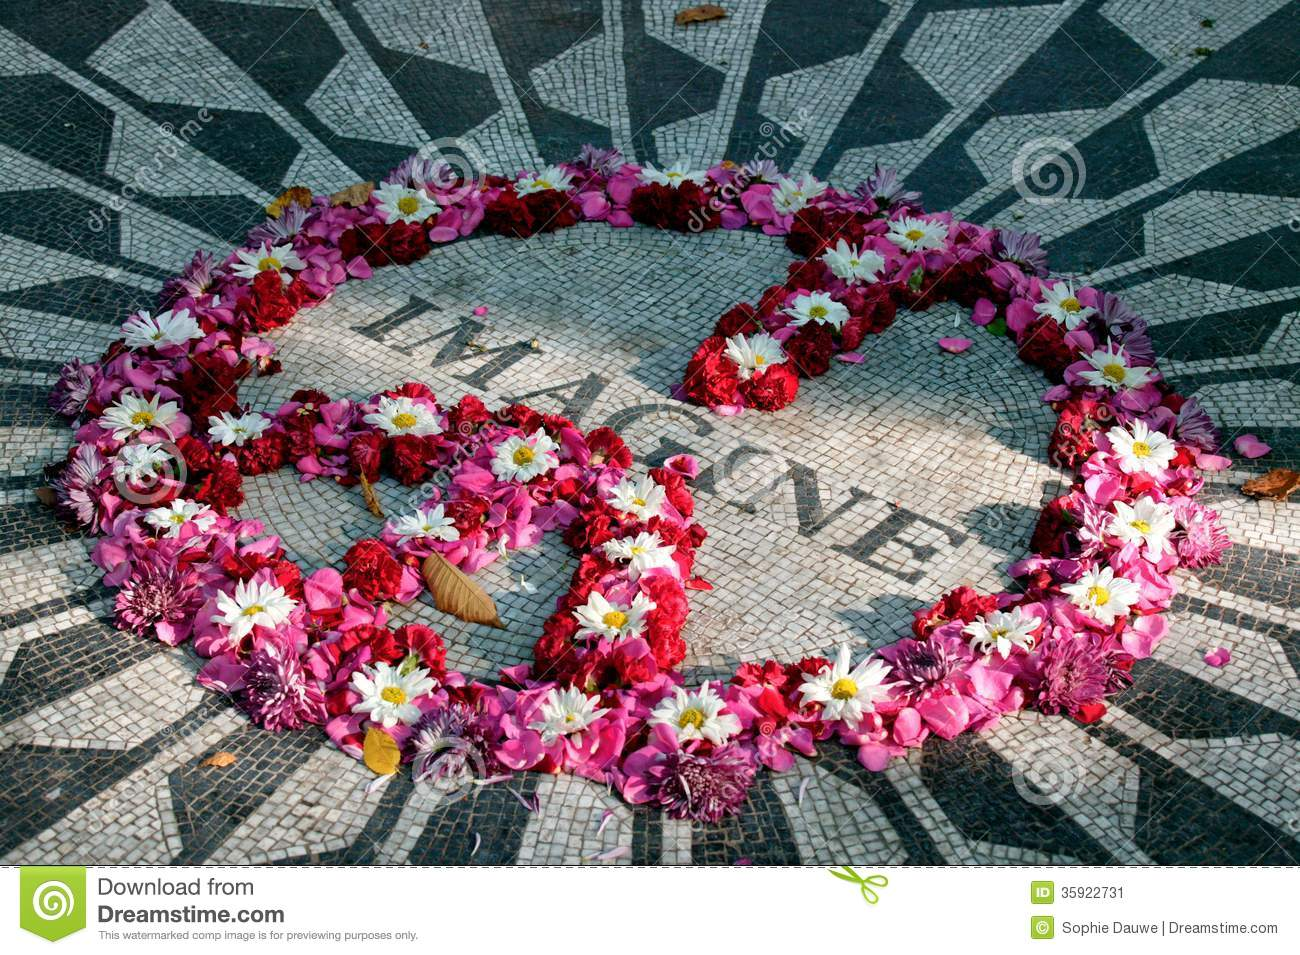 imagine mosaic strawberry fields in central park